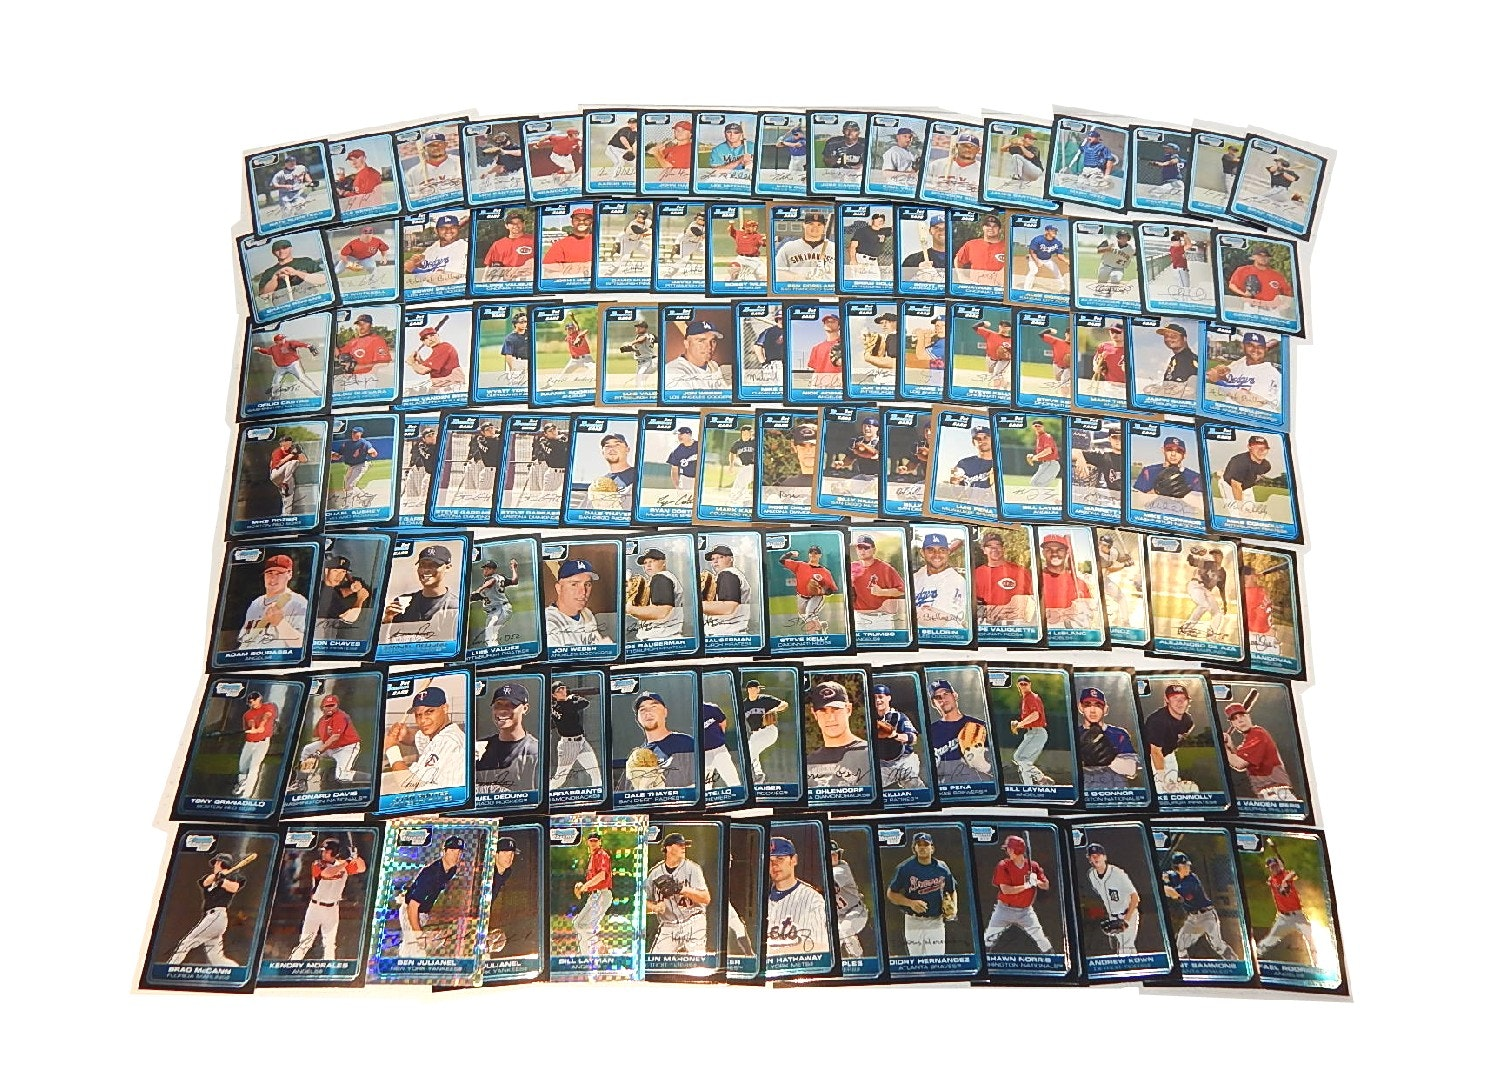 2006 Bowman and Bowman Chrome Rookie Baseball Card Collection